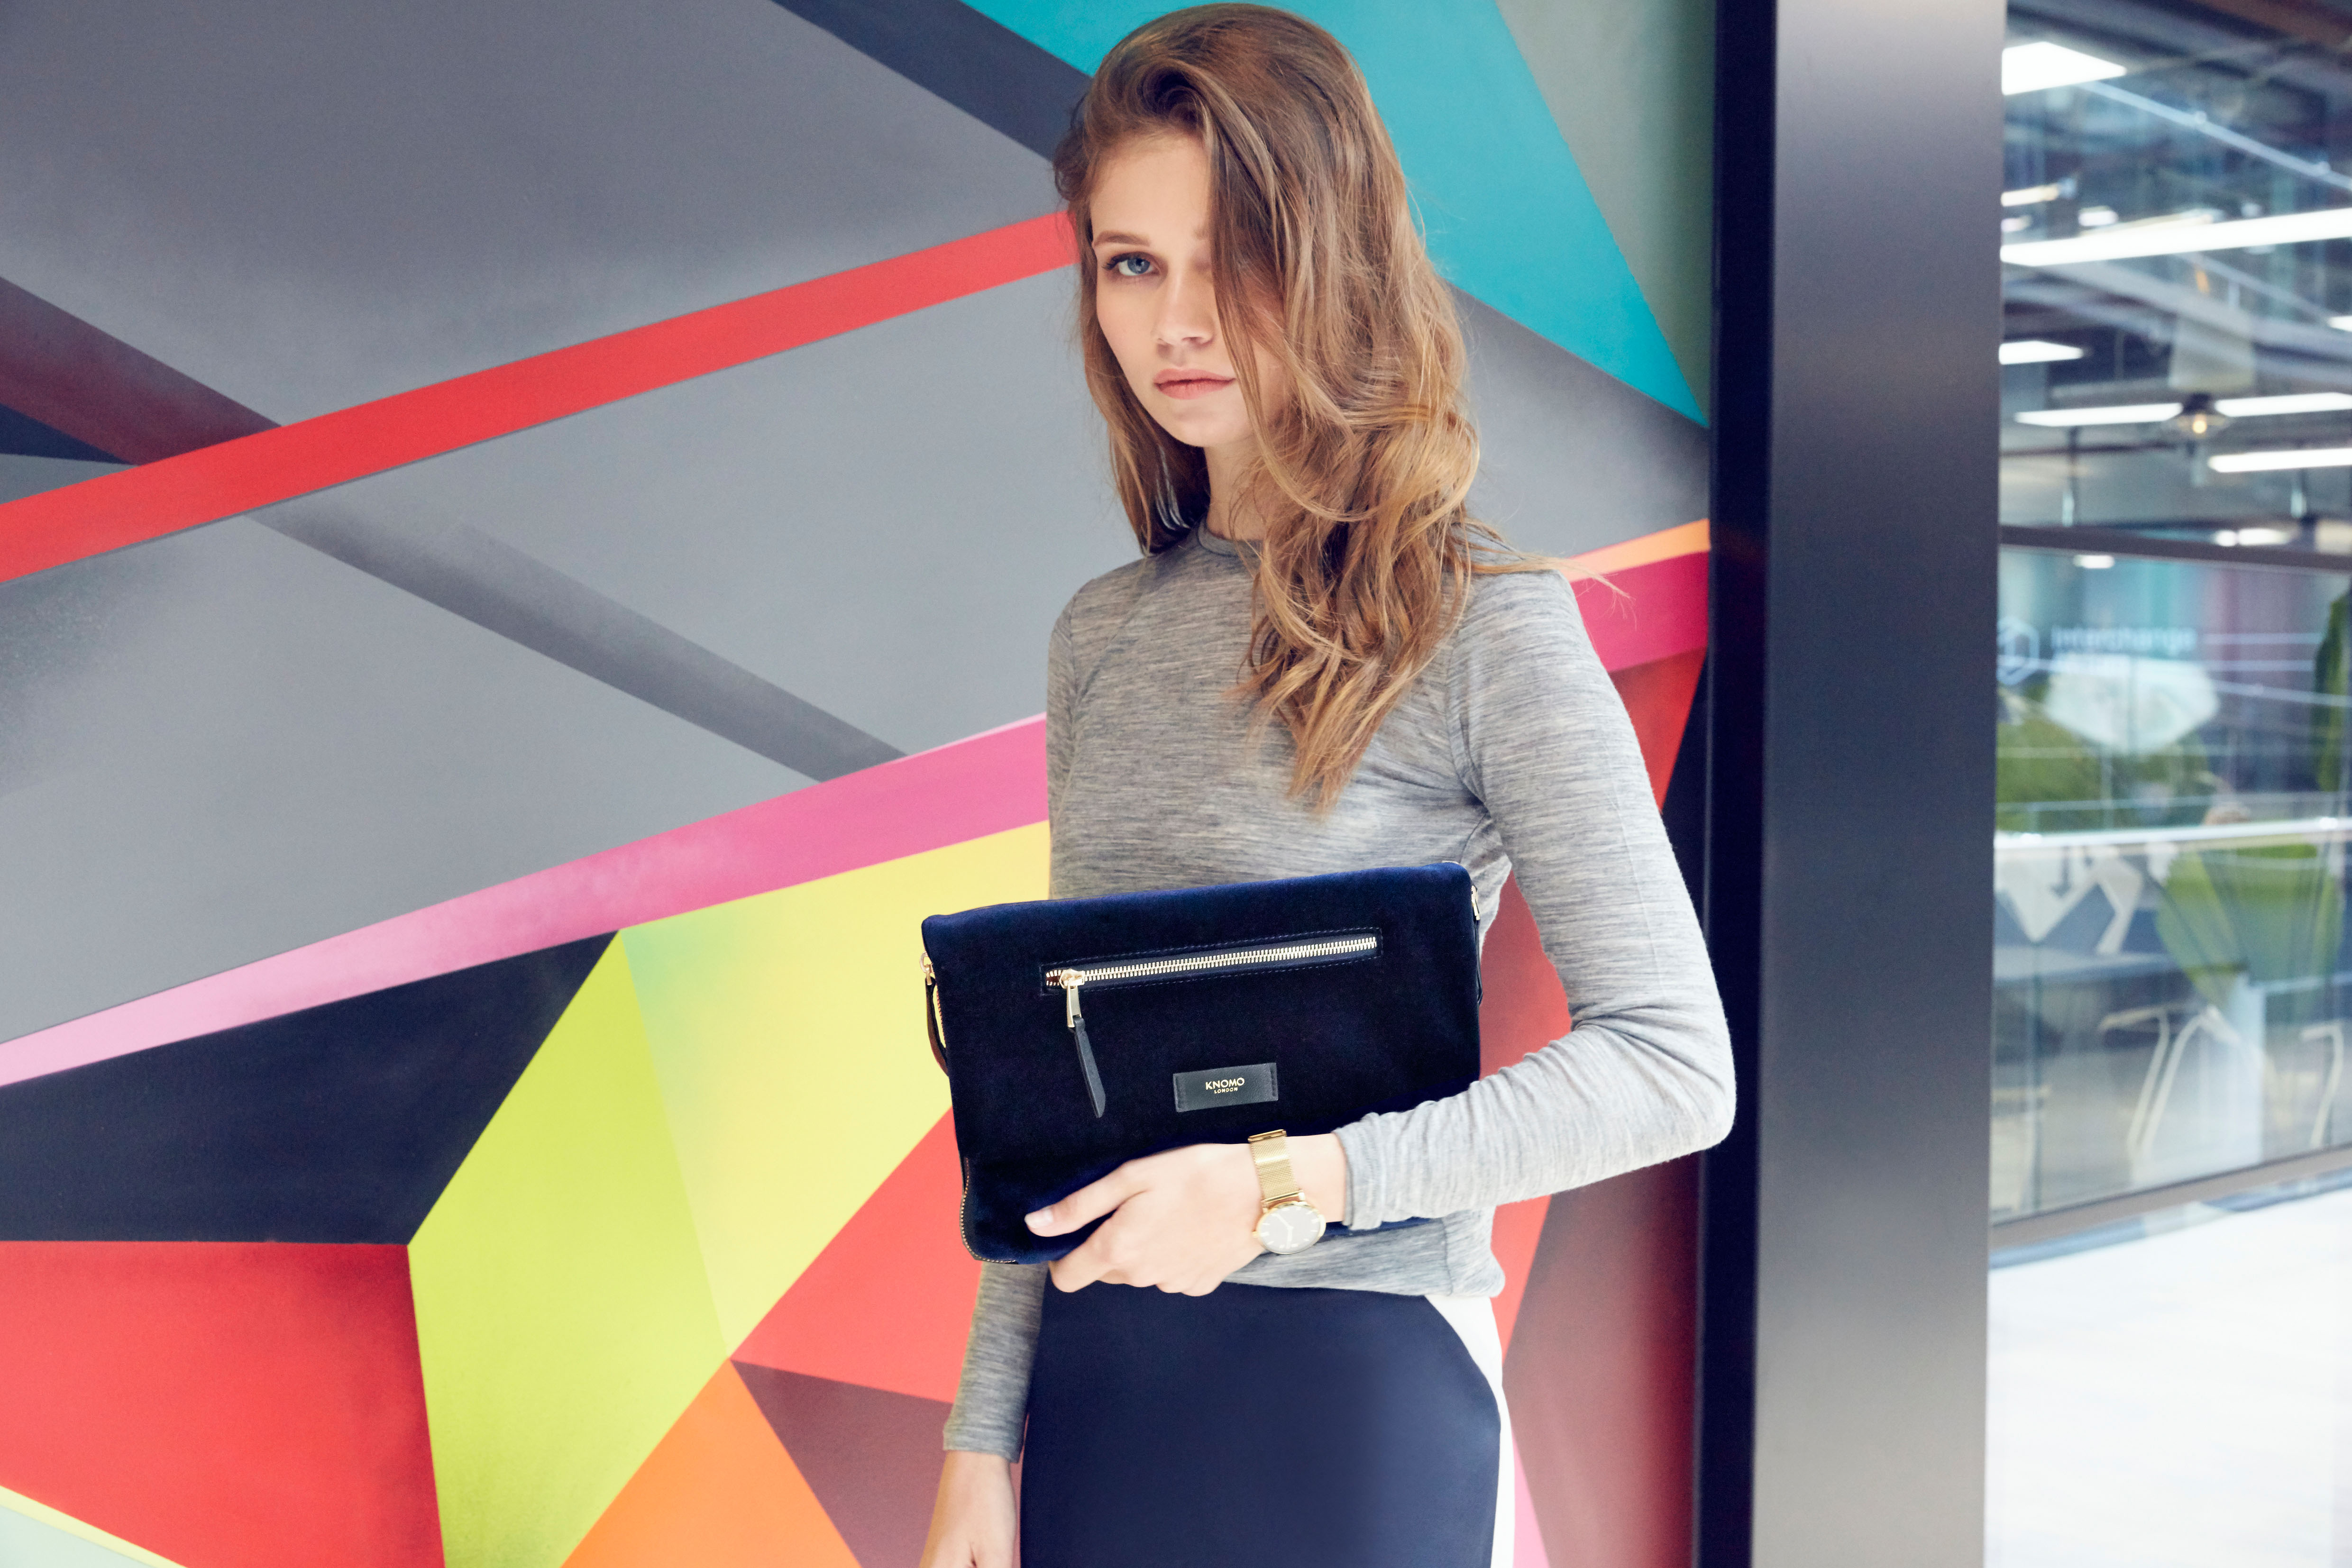 elektronista-clutch_velevt_midnight_aw16_look-book-images_1mb-1